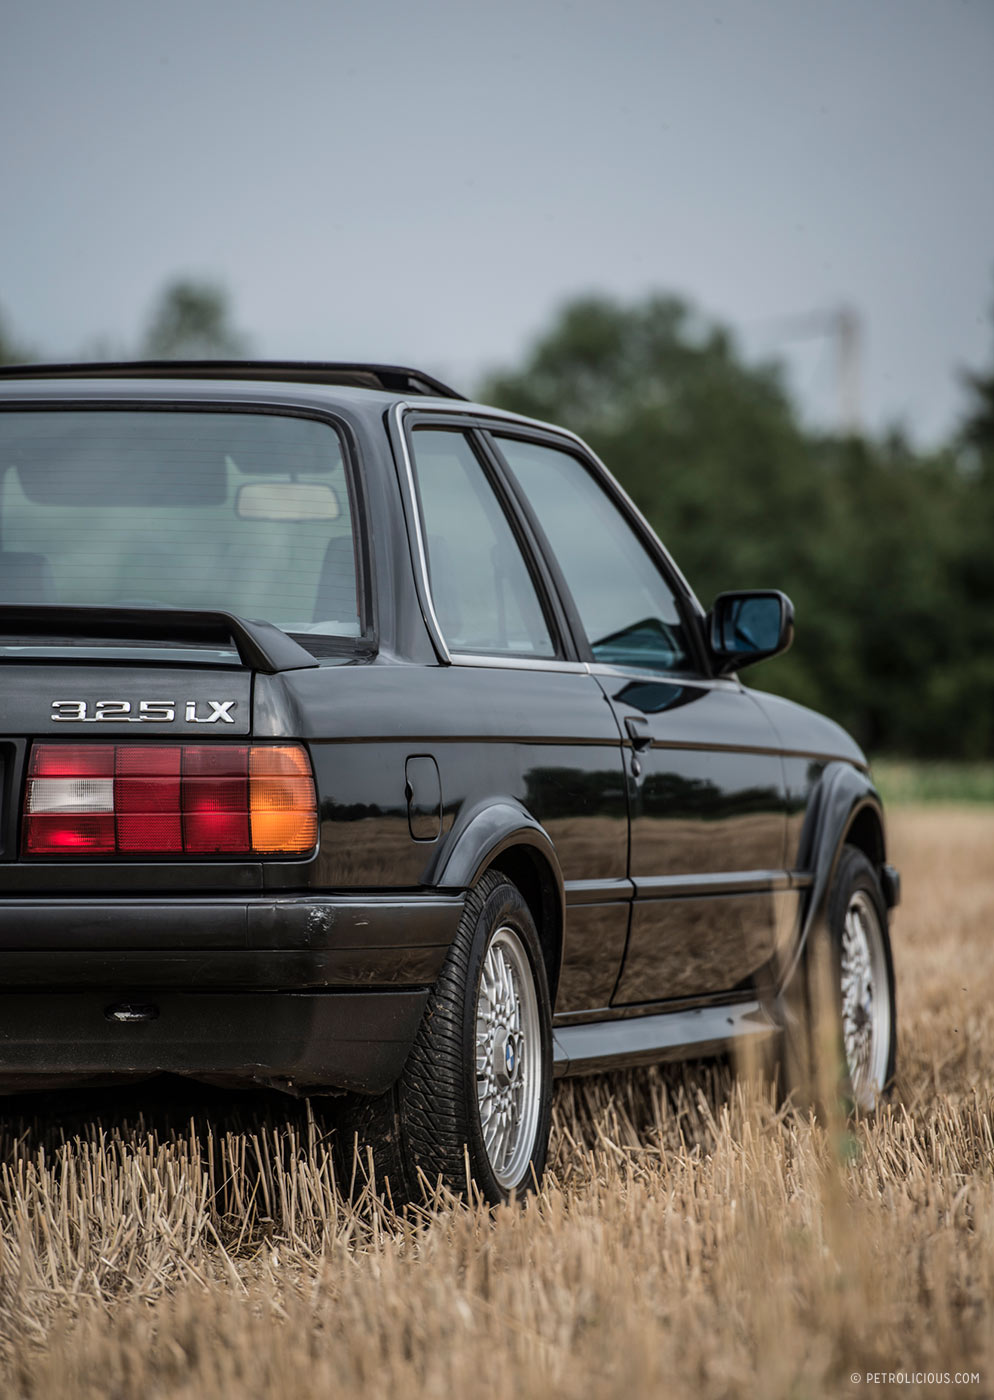 Anyway the e30 325ix was made from 1986 to 1991 and sold in the us during the 1988 1990 and 1991 model years european e30 fanatics are even luckier than